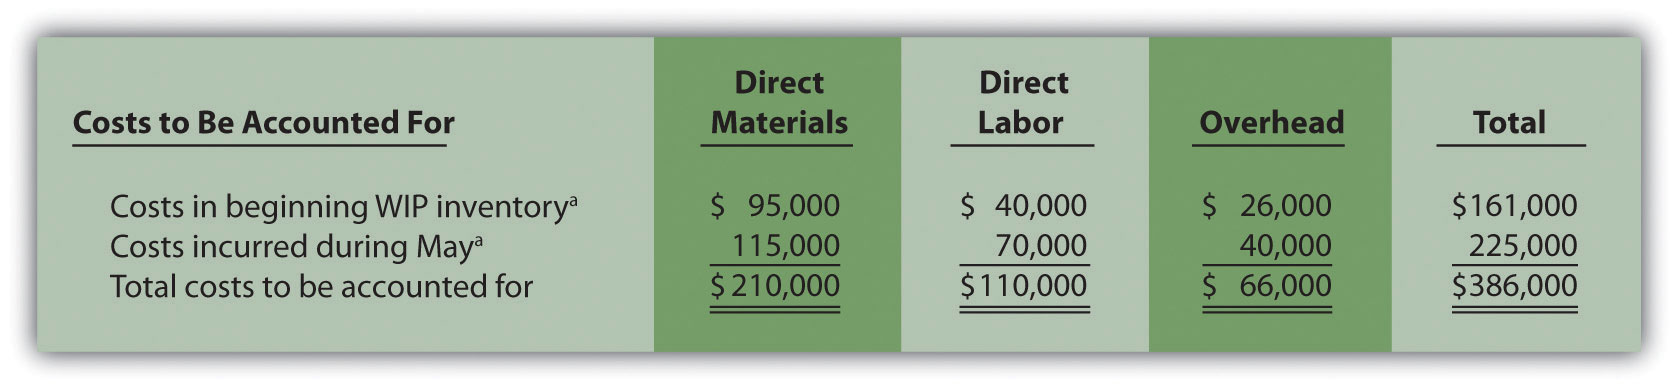 Step 2. Figure 4.5 Summary of Costs to Be Accounted for in Desk Products' Assembly Department: